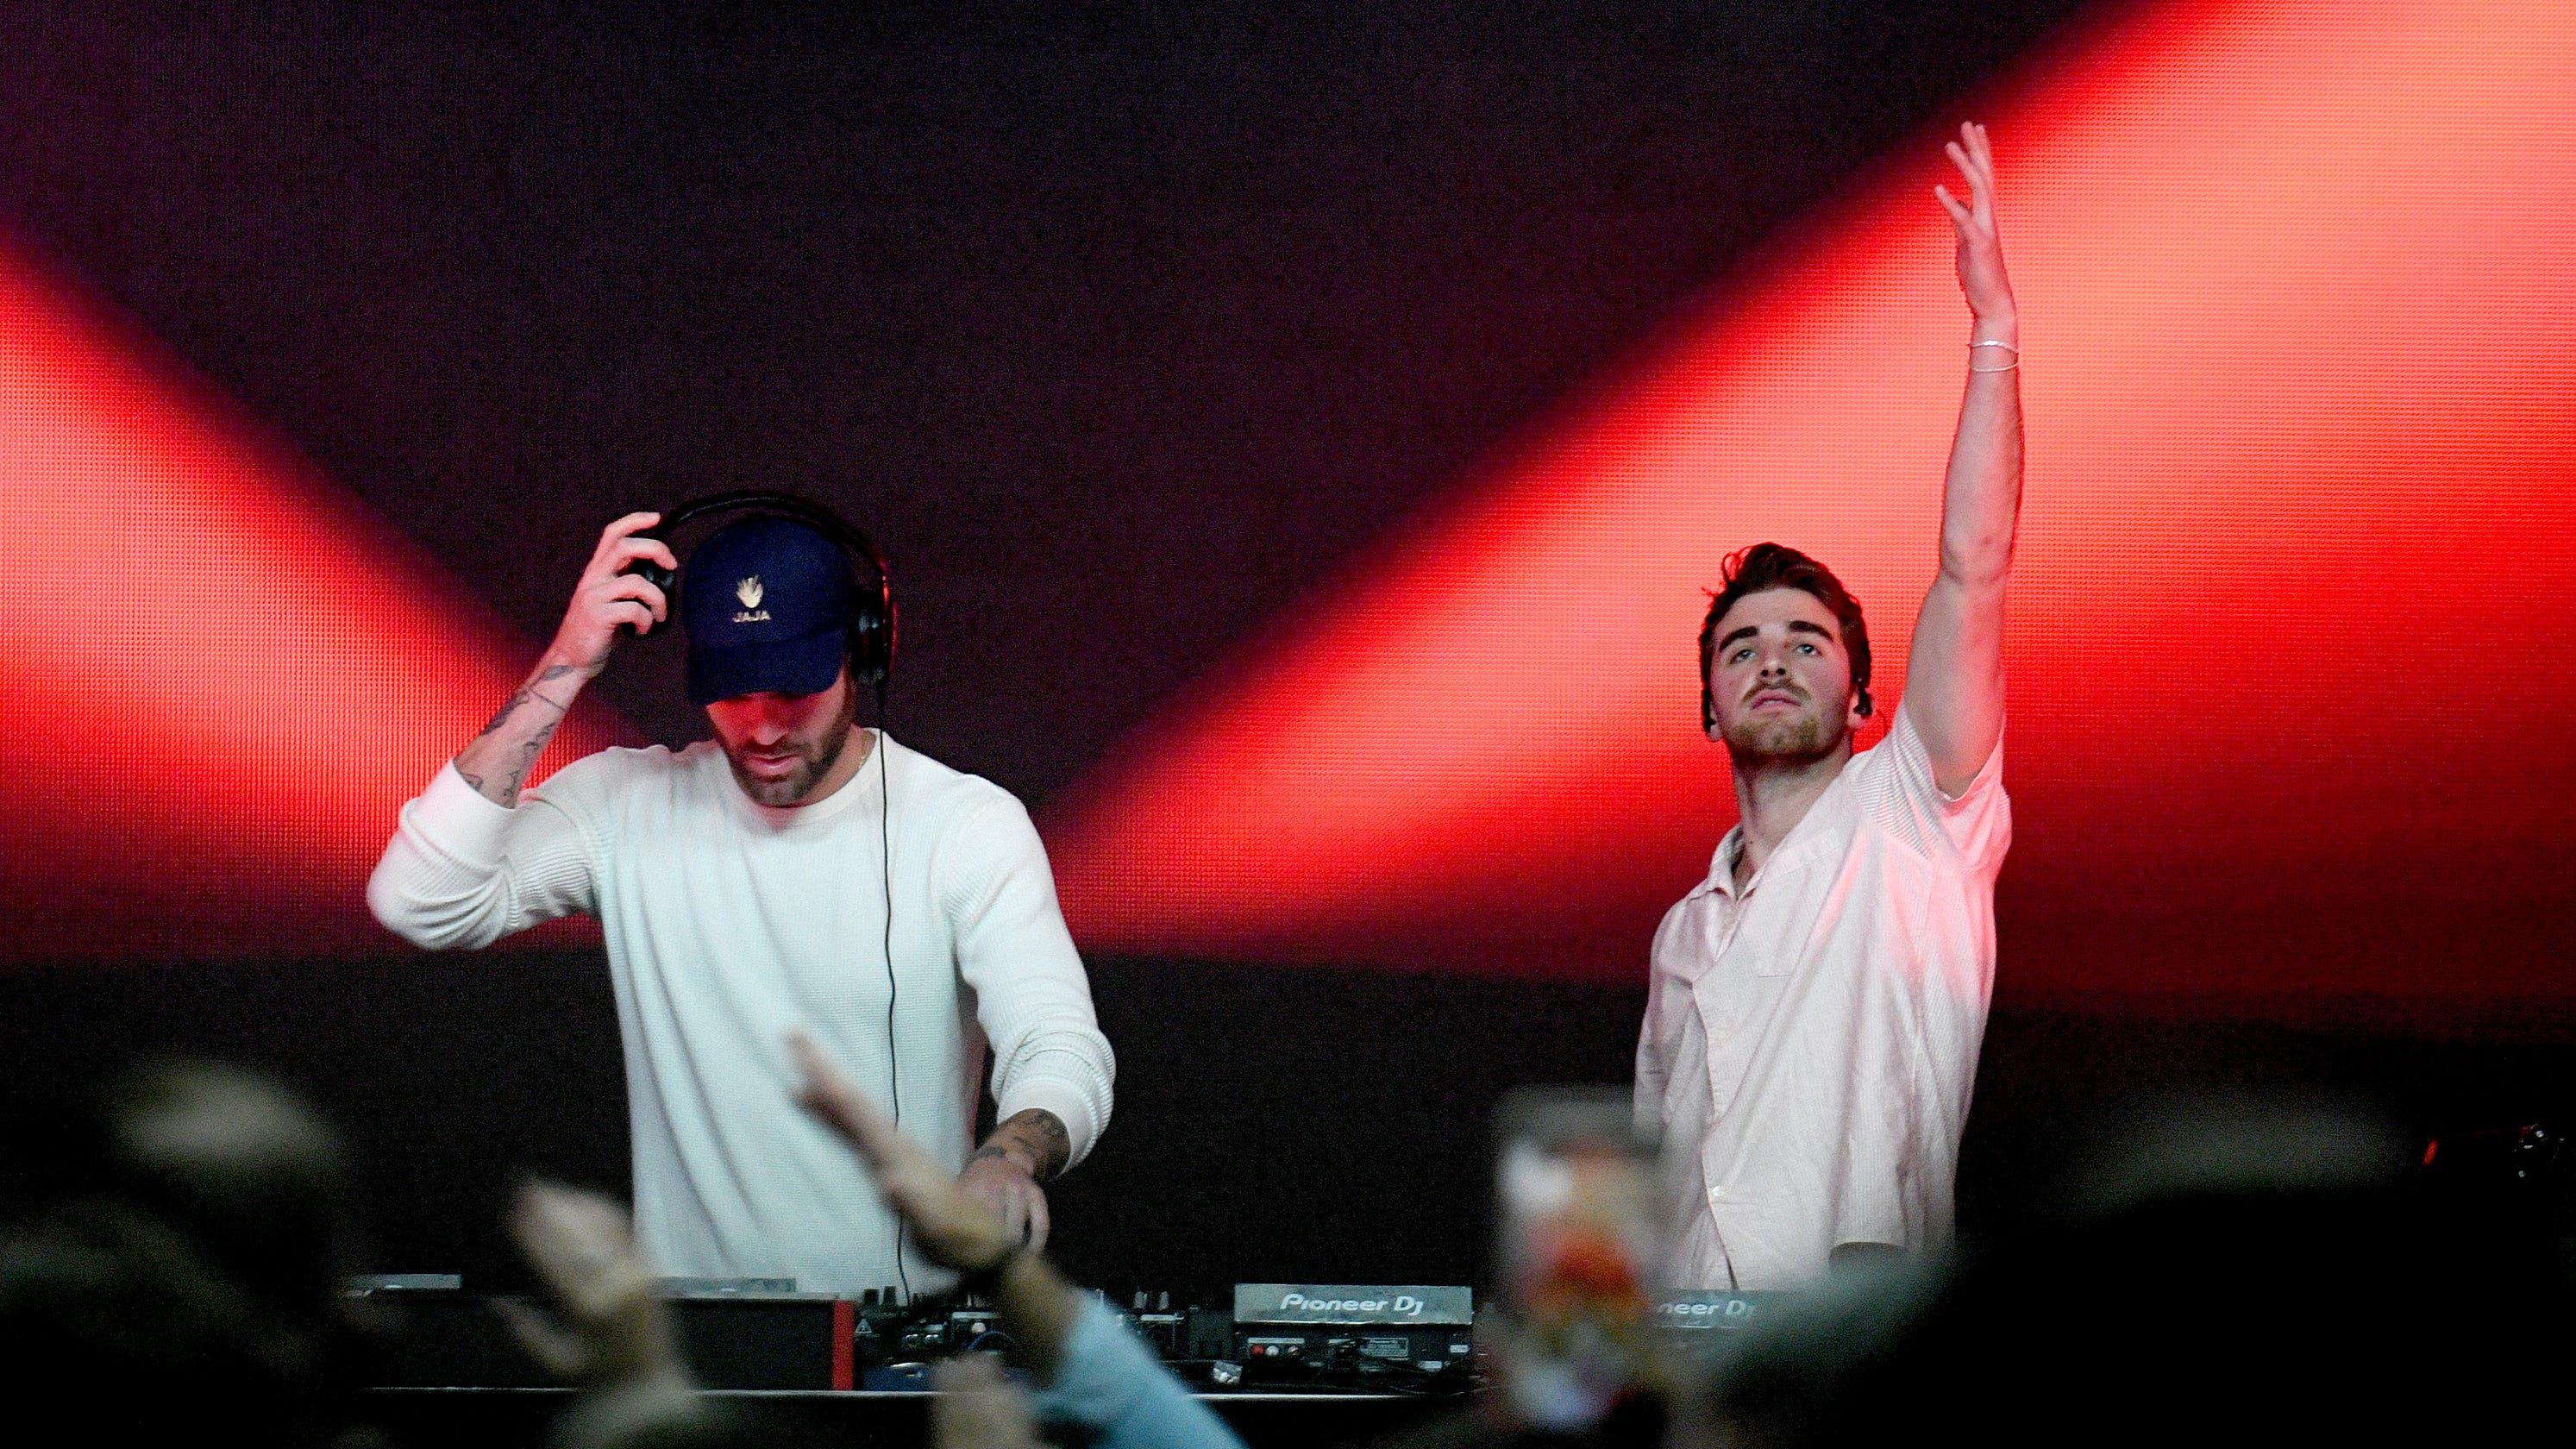 The Chainsmokers face backlash for packed 'drive-in' charity concert: 'Straight up irresponsible'